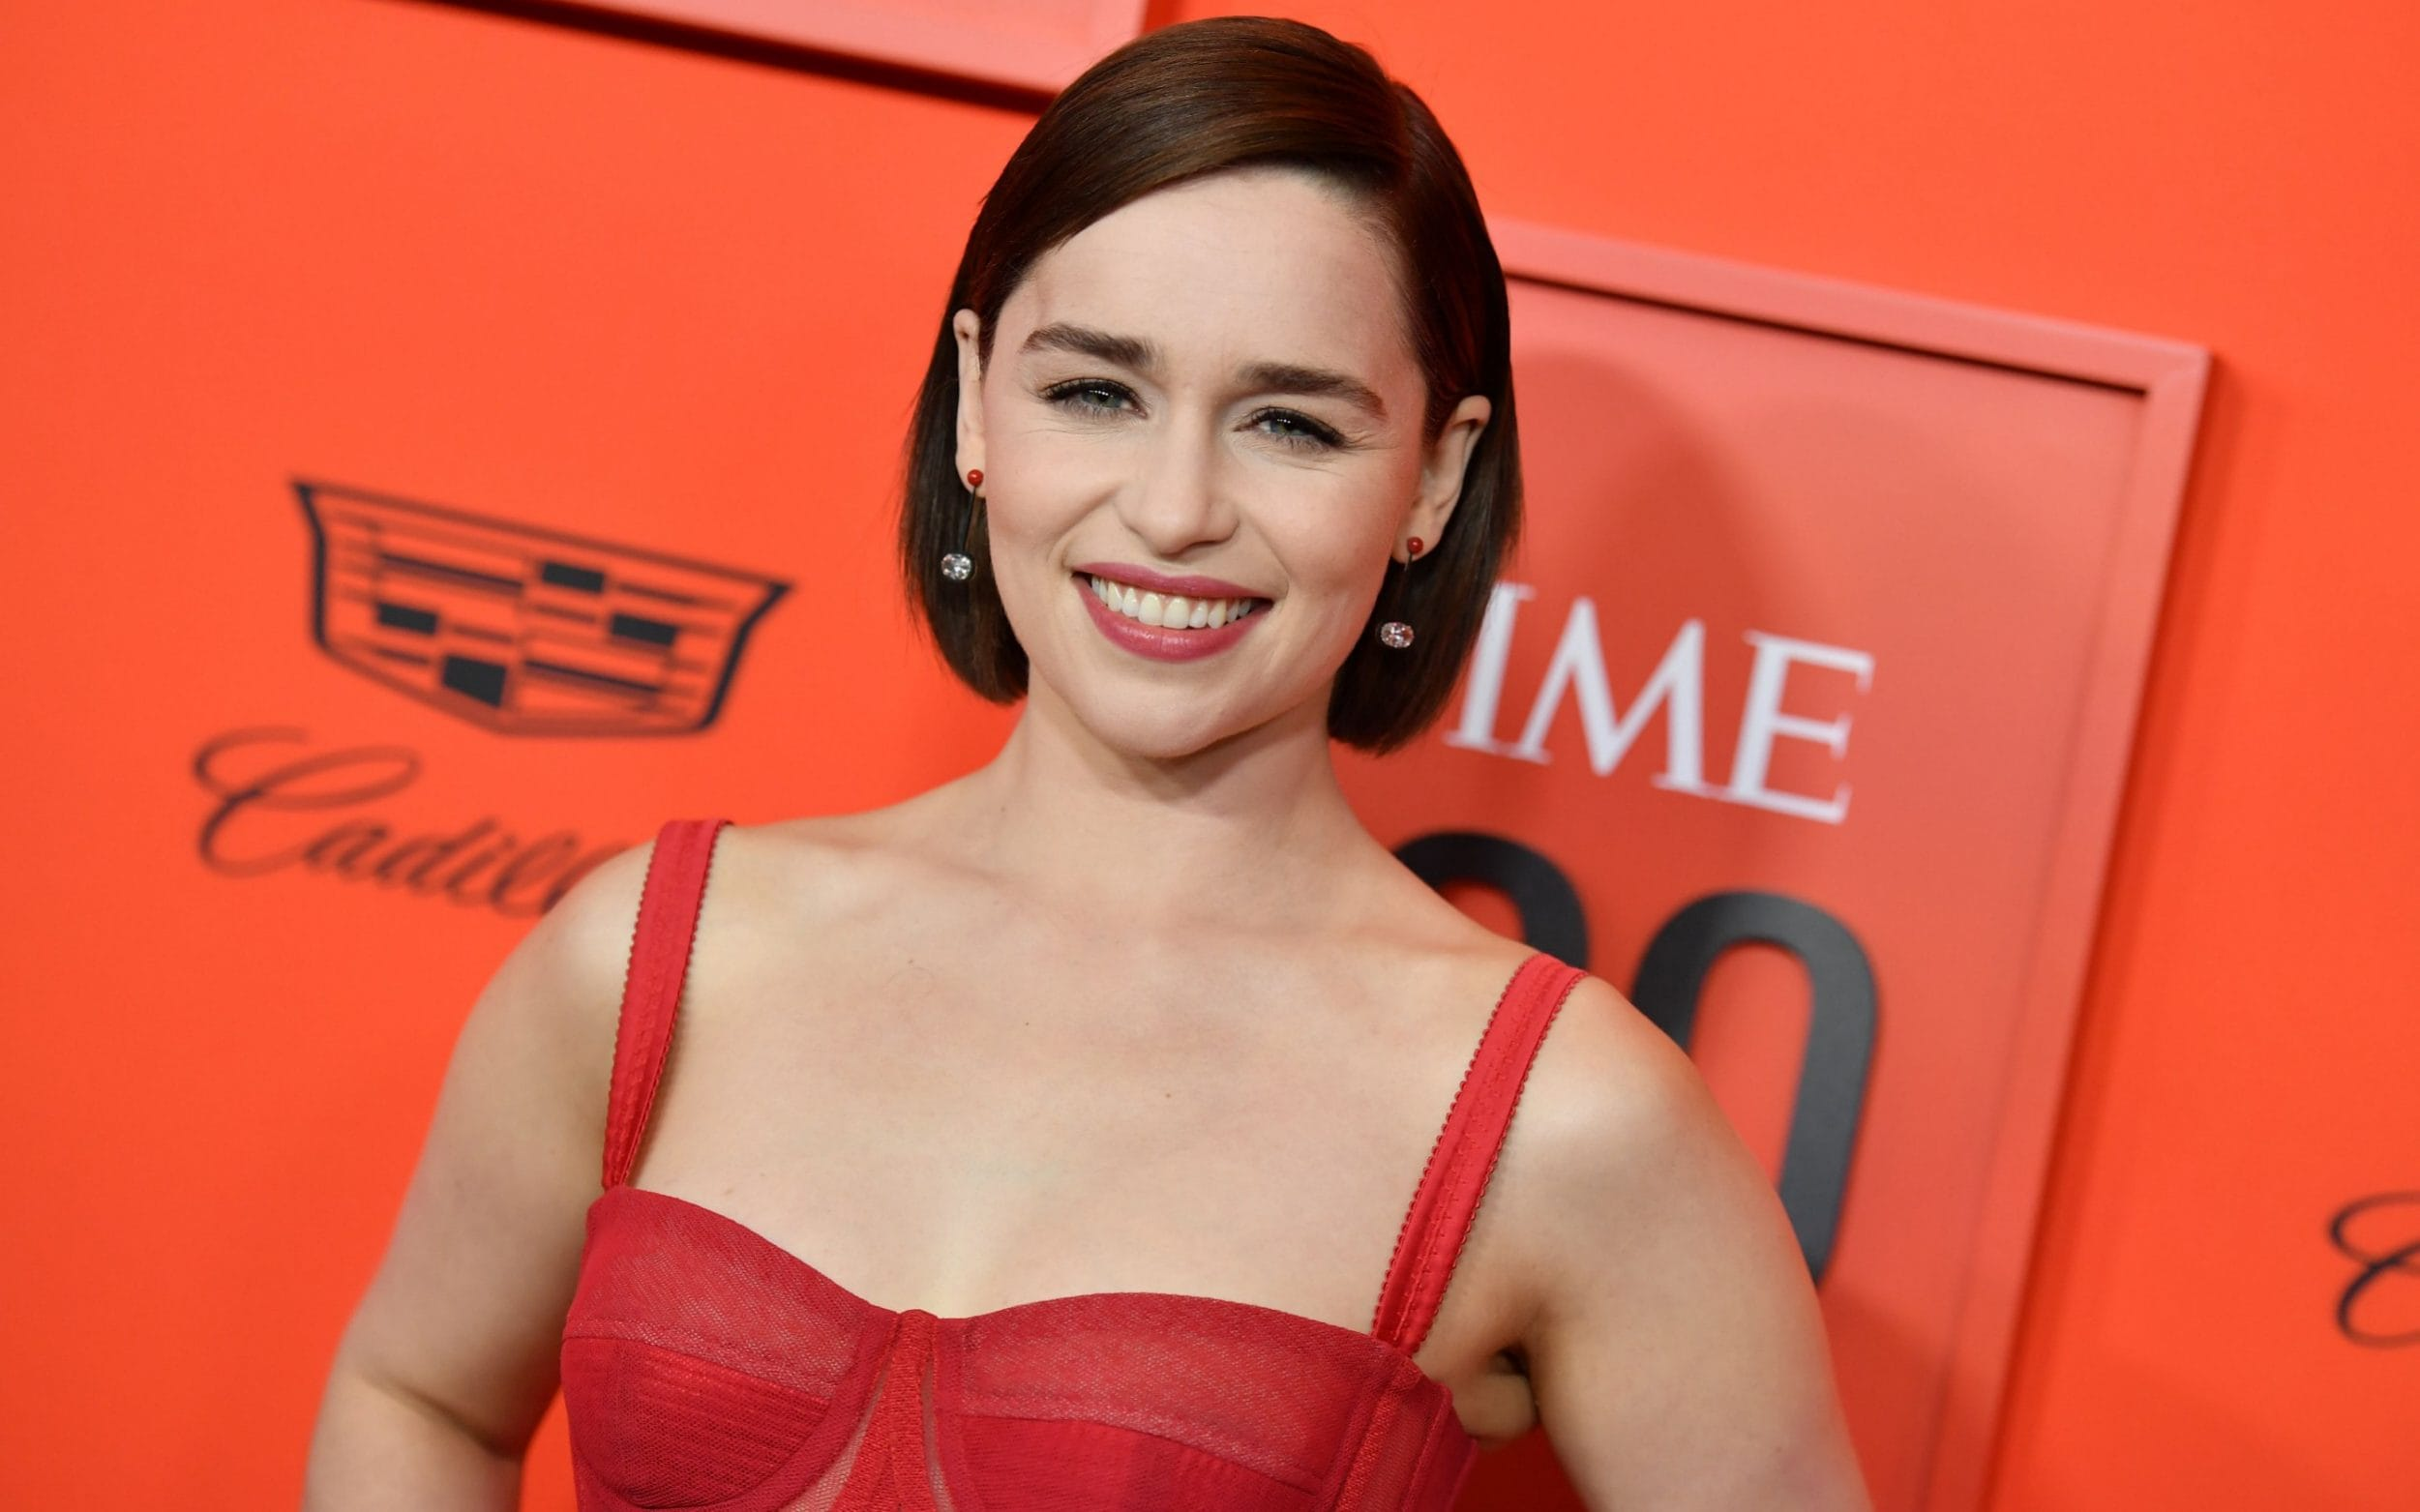 Game of Thrones star Emilia Clarke says she put pressure on herself to feel normal after suffering a stroke